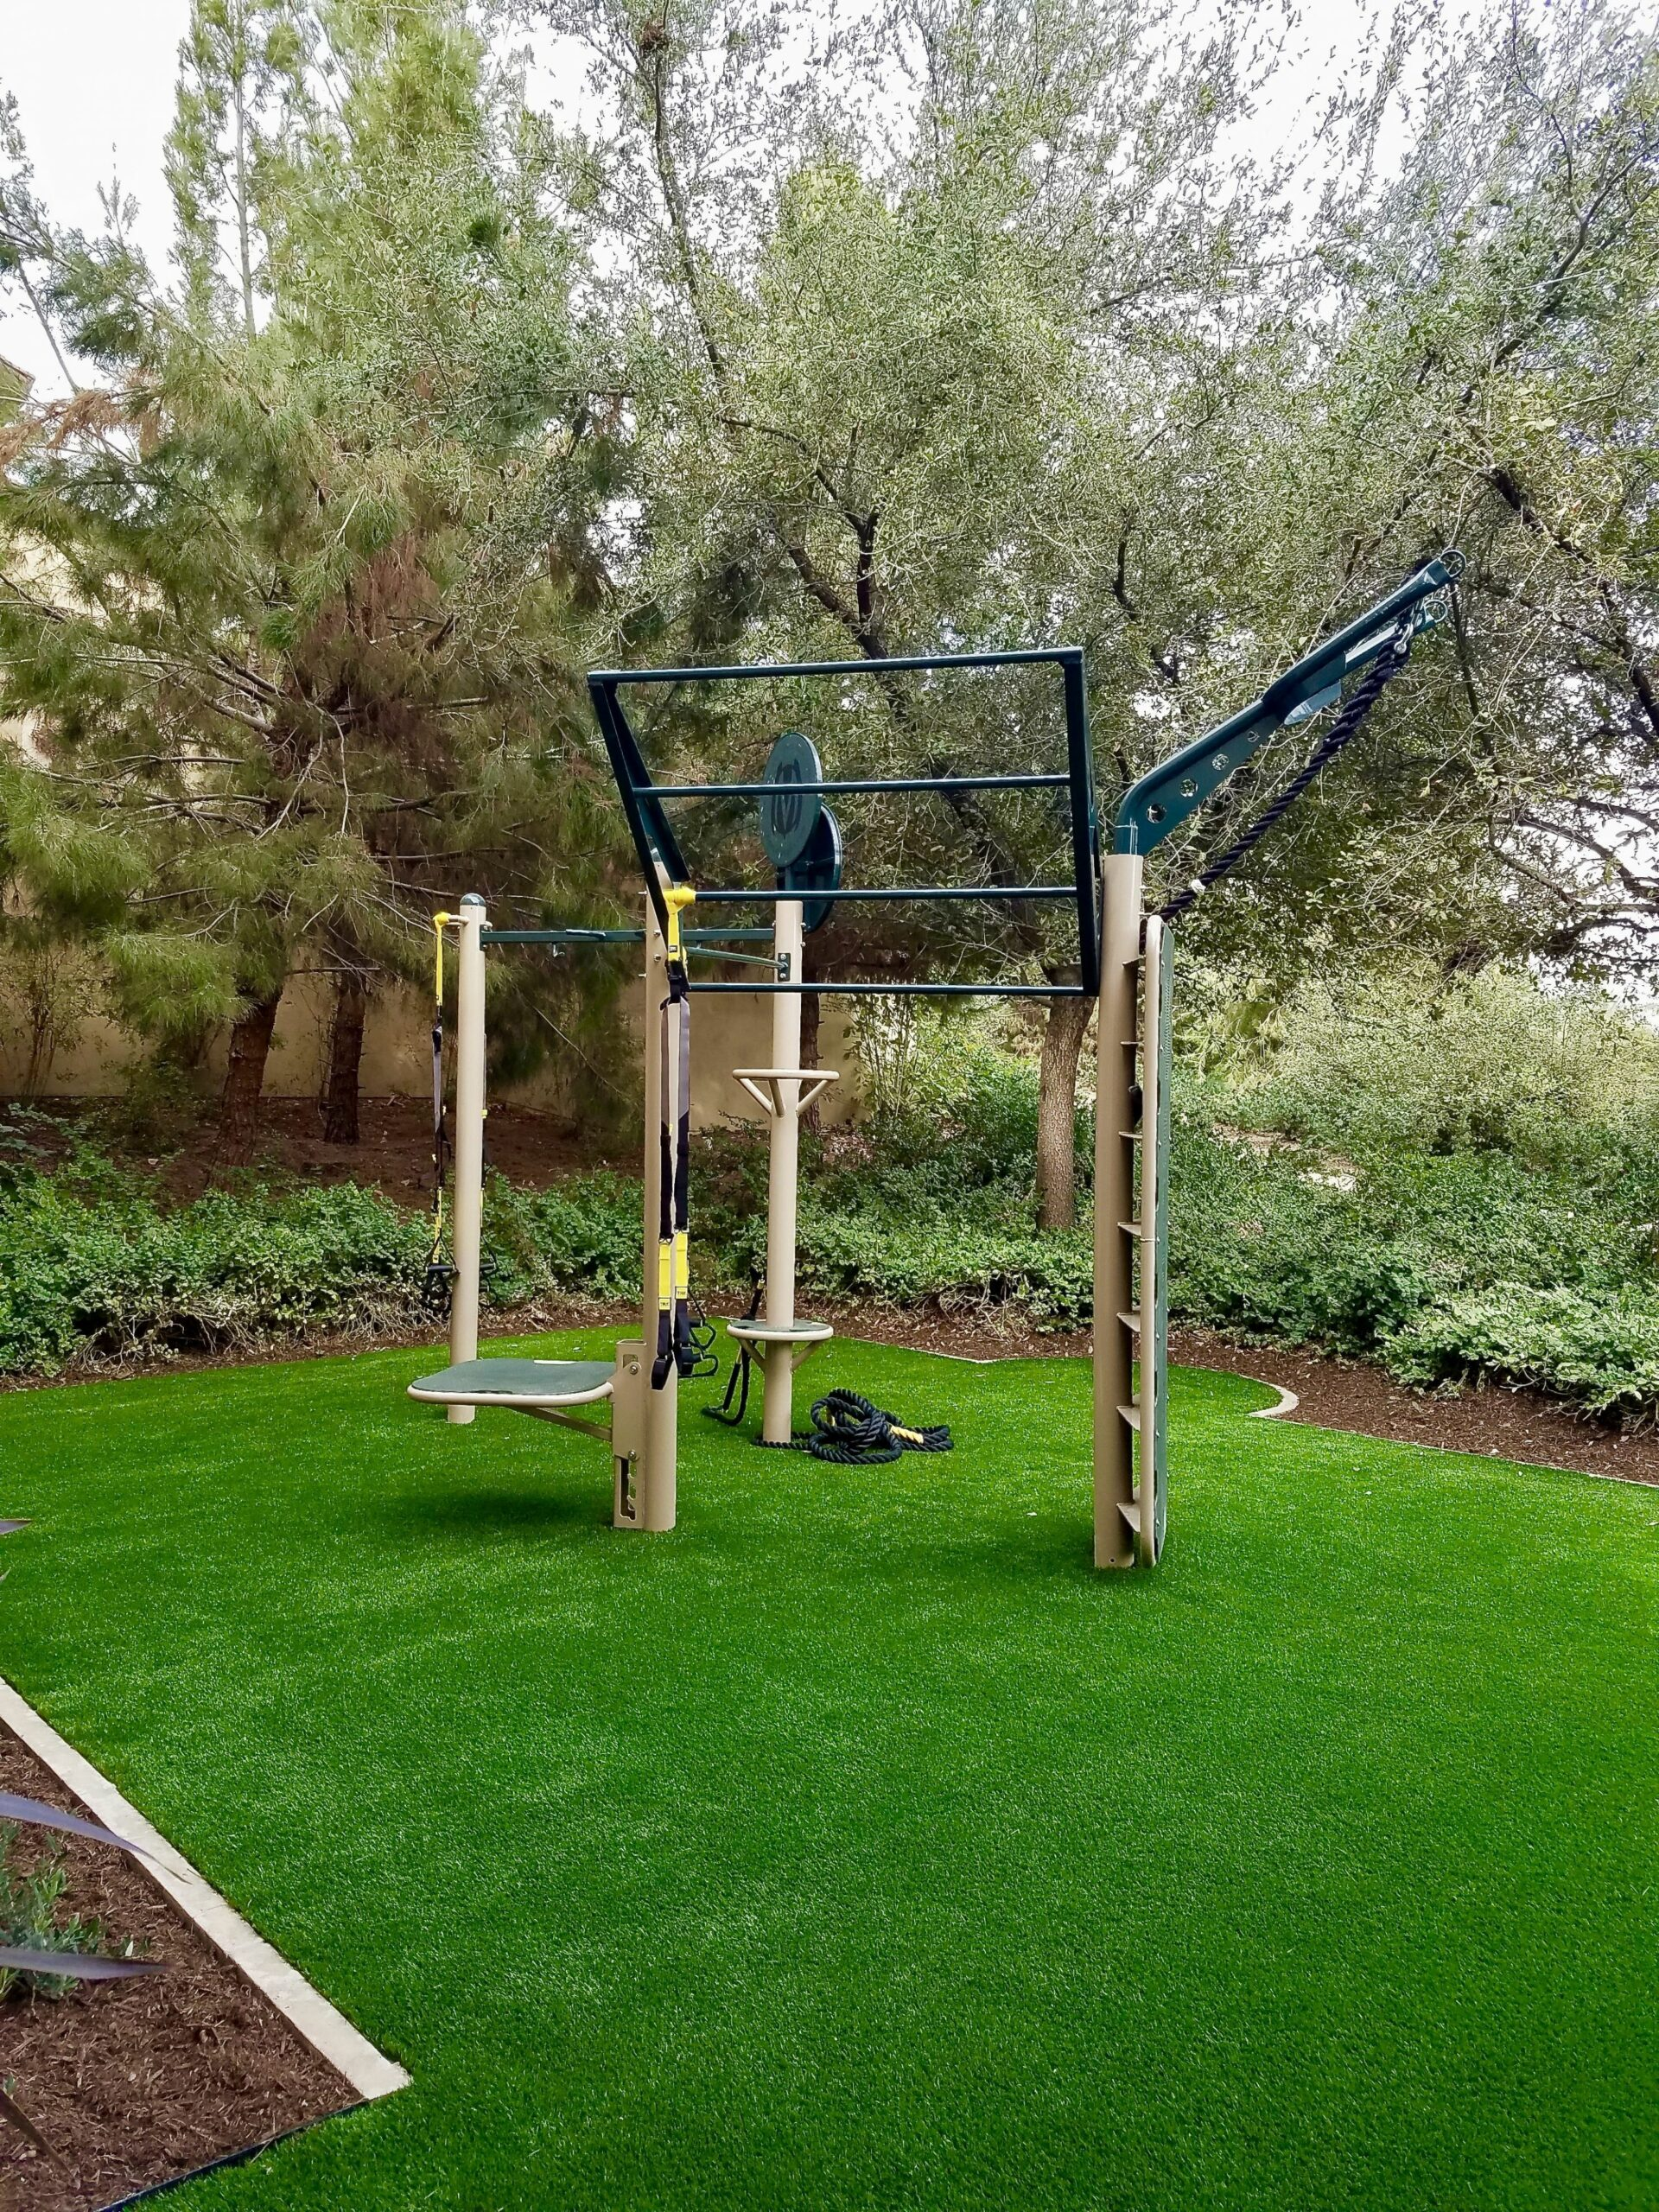 Outdoor gym for golf community fitness area. Utilizing the custom ..